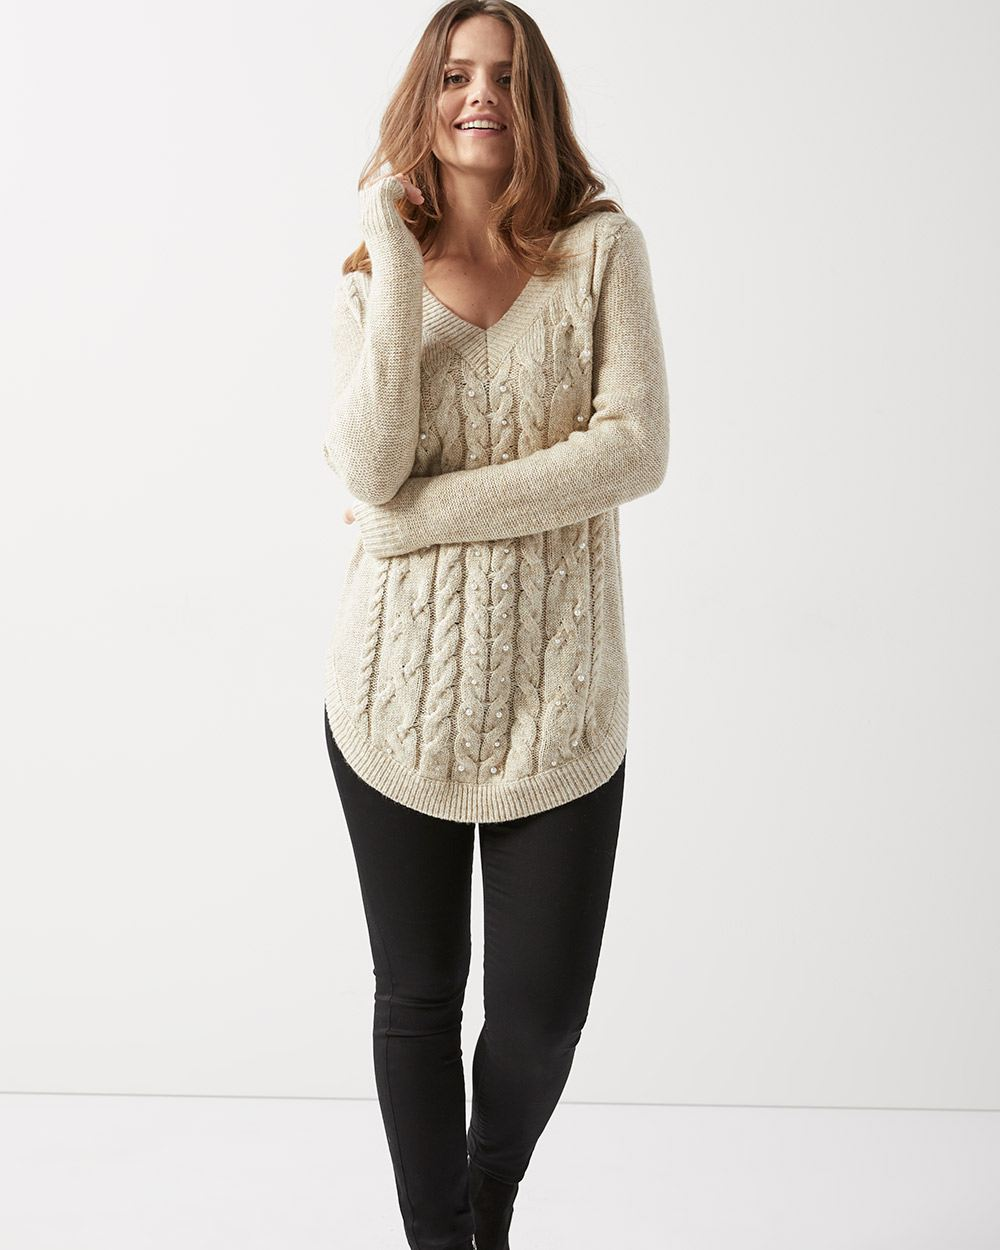 Hairy knit cable tunic sweater with pearls